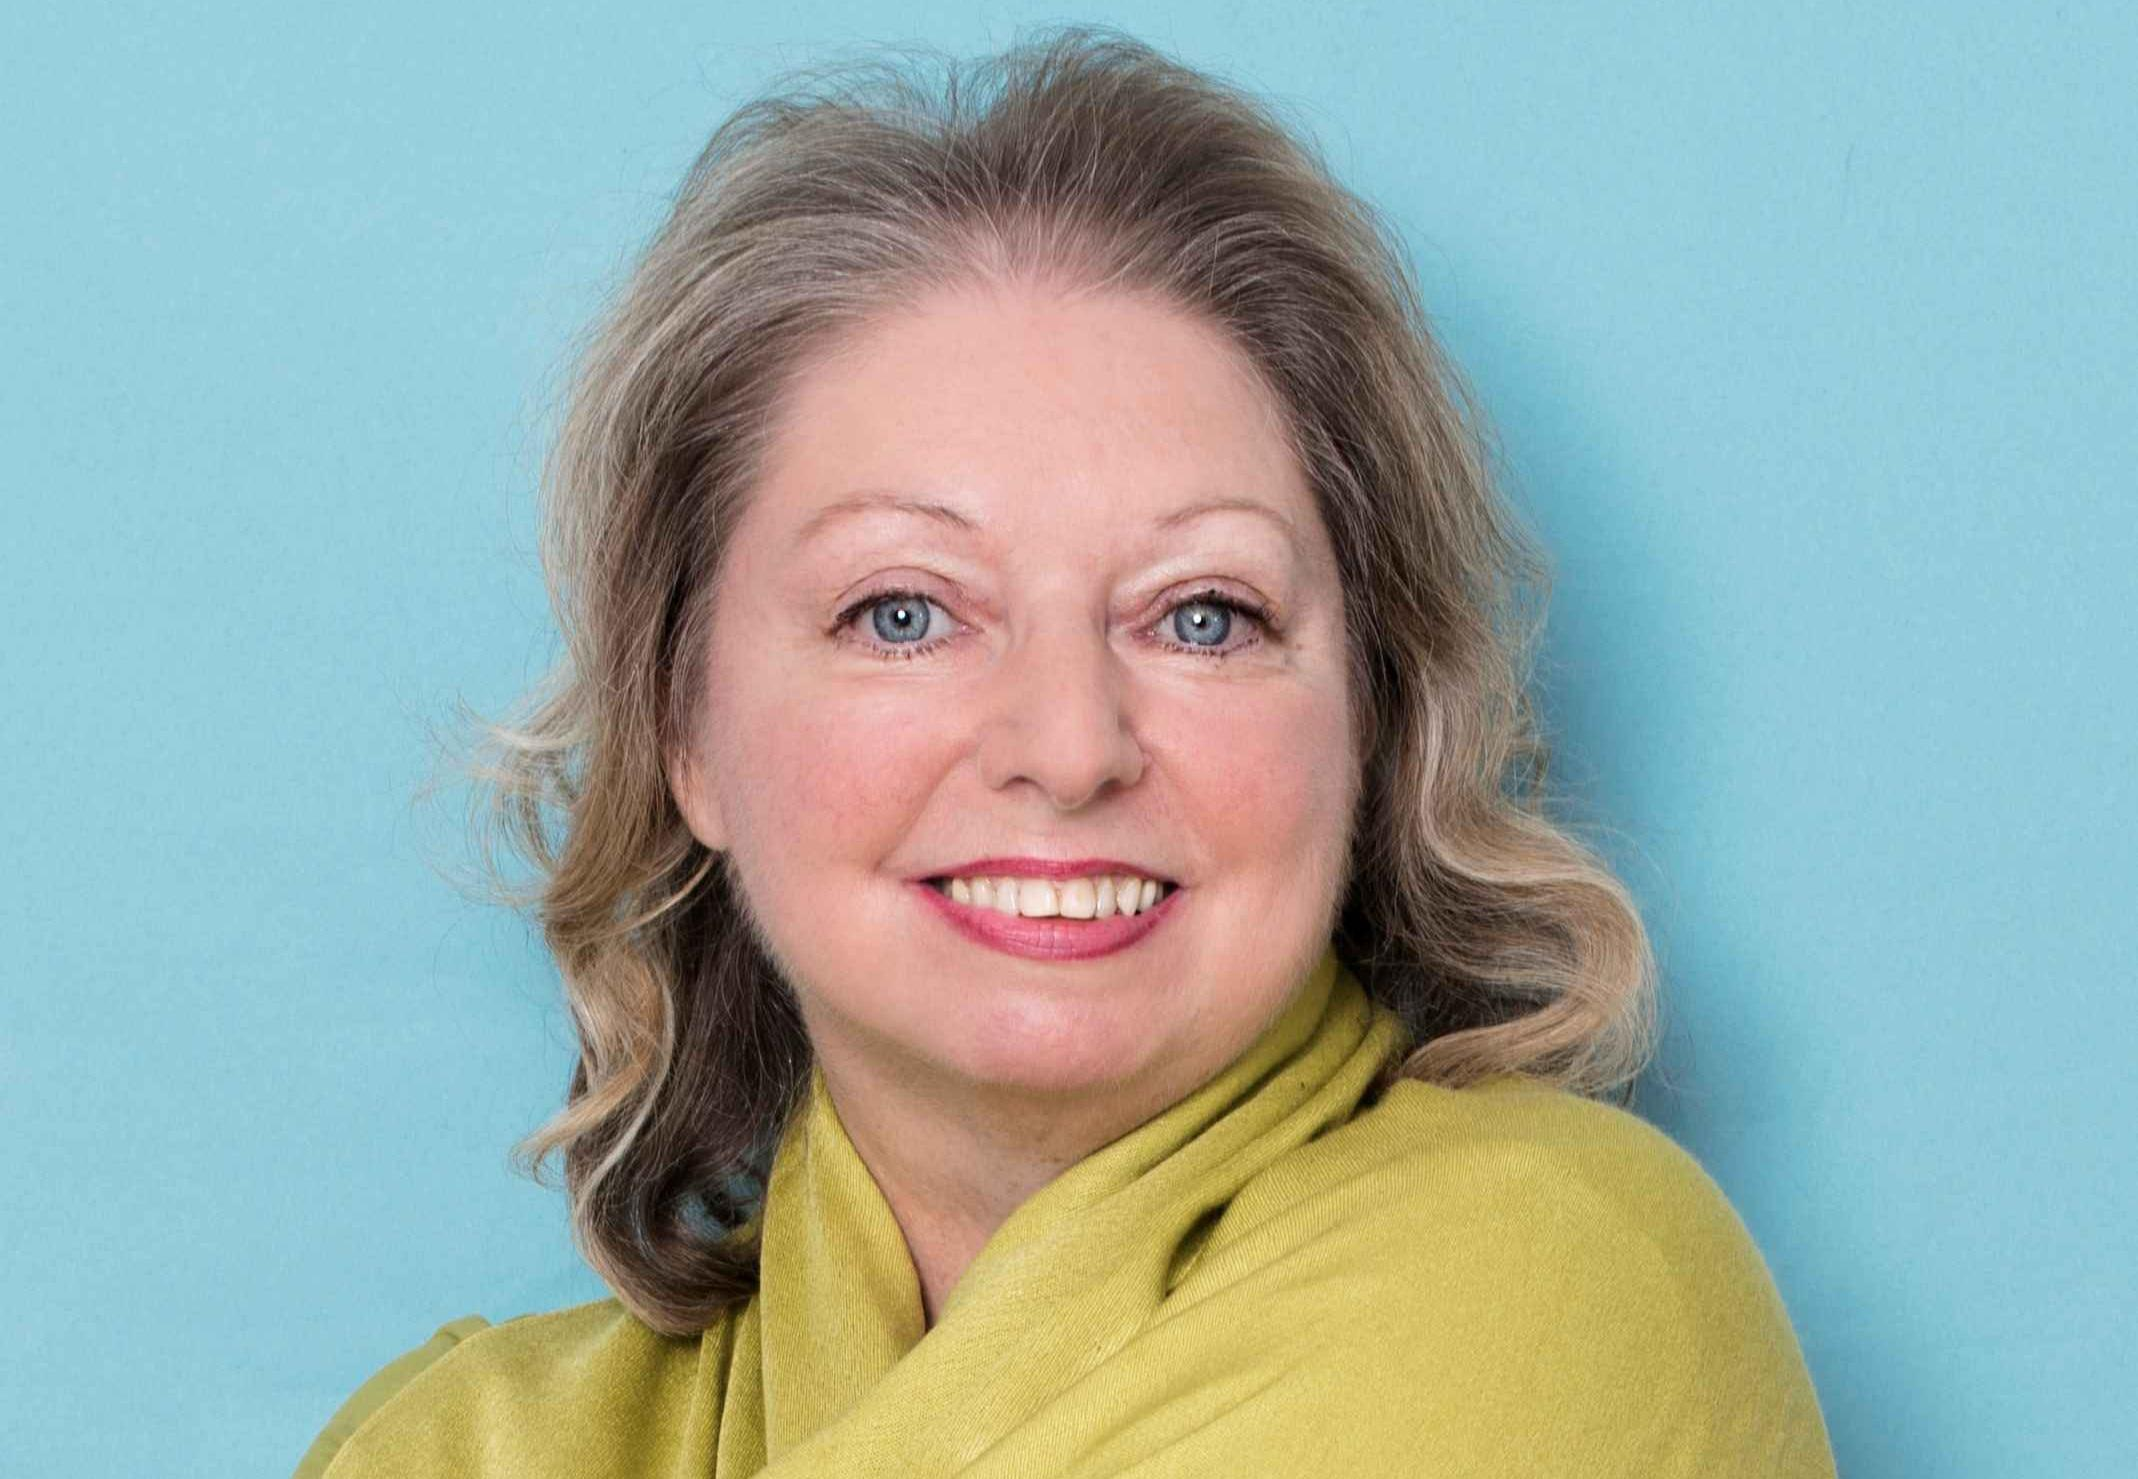 Novelist Hilary Mantell wants to leave the UK and 'return to being European'